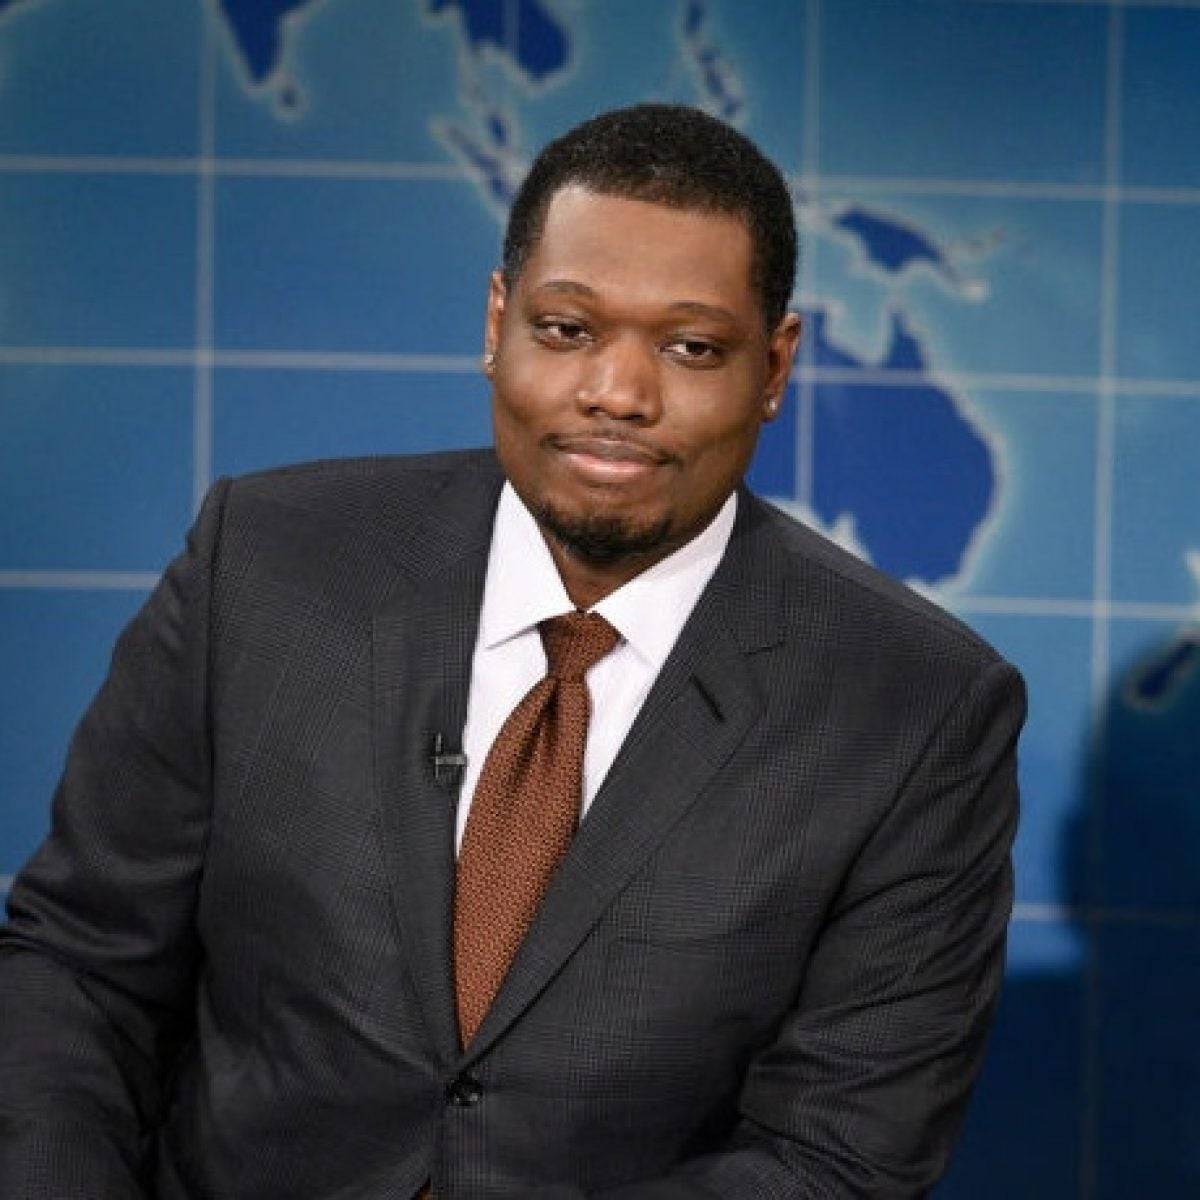 Michael Che Rounds Out A Week Of Toxic Masculinity With Jokes About Simone Biles